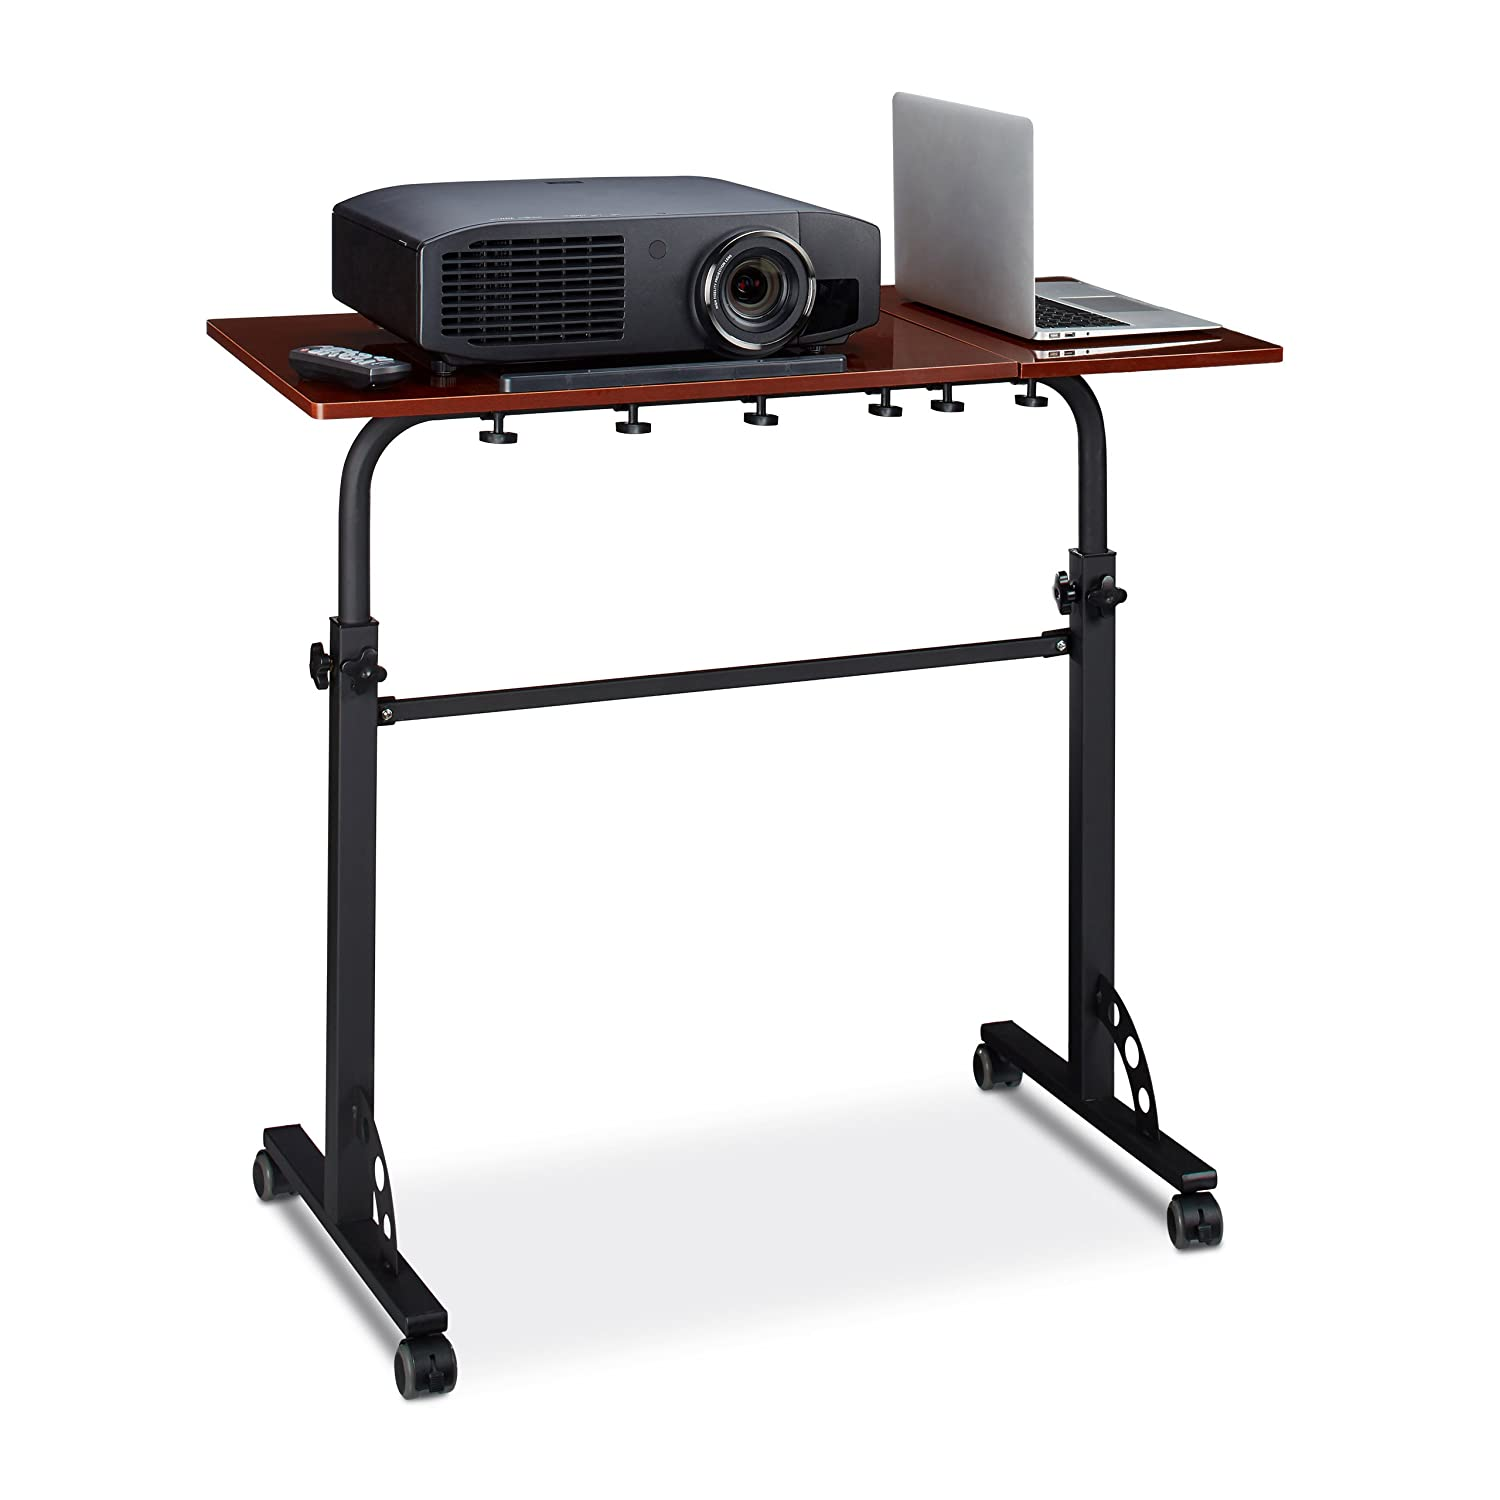 Relaxdays XXL Laptop Table Height Adjustable, 110 x 100 x 50 cm, Wood, Mobile Lecturn, Wheels with Brakes, Notebooks, Projecters, Laptops, 2 Surfaces, Ebony Black 10020807_46